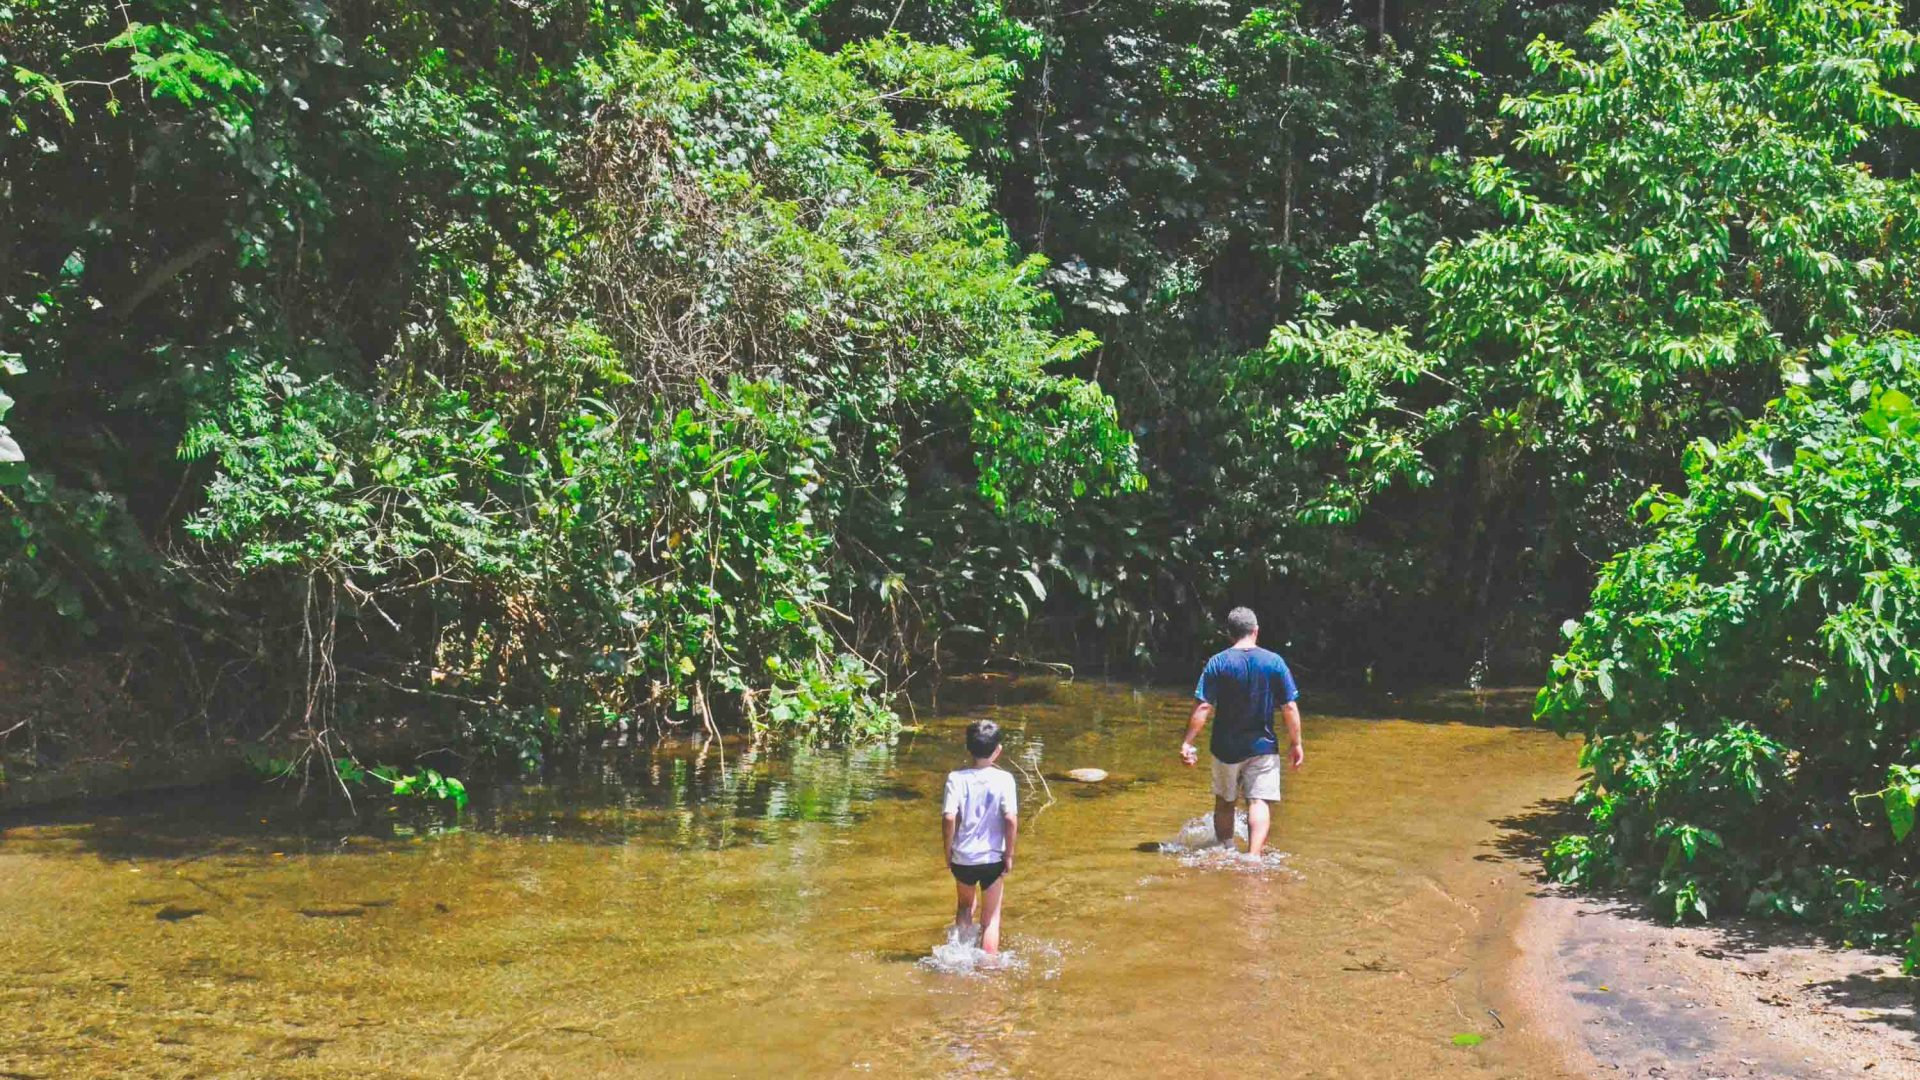 When the road through the Atlantic Rainforest gets covered in water, there's no other choice than to wade through it.